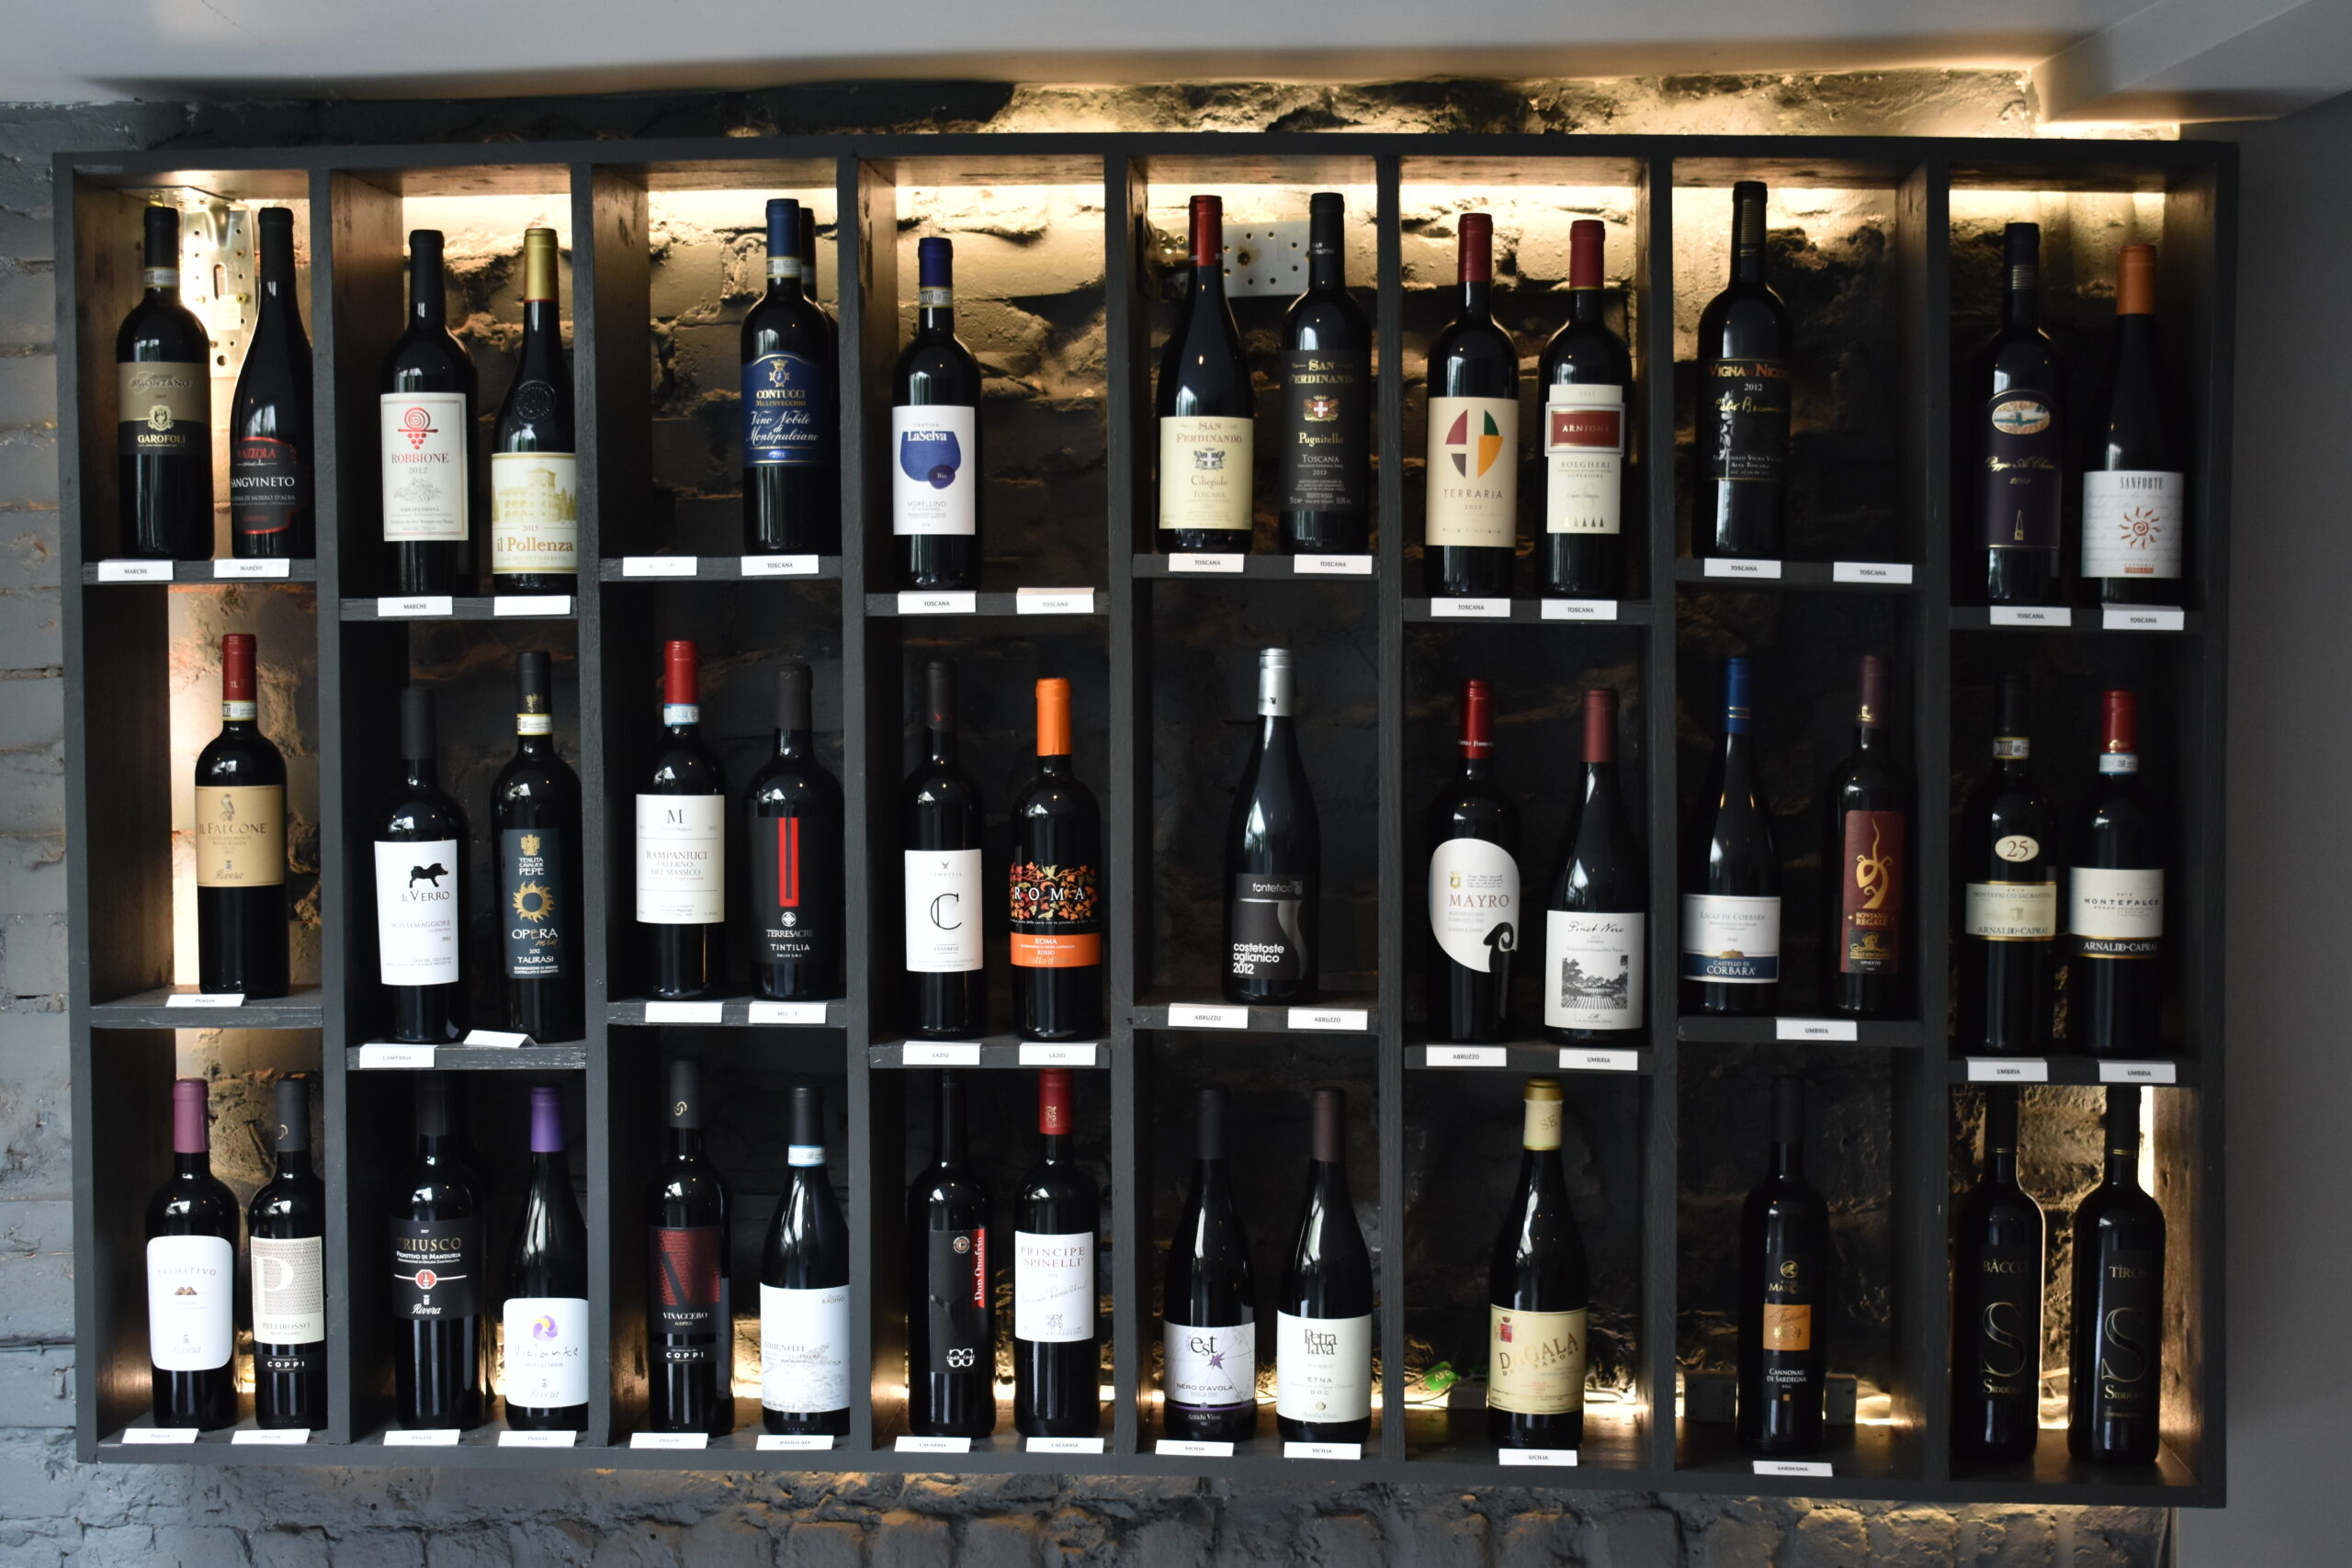 L'Artigiano - NEW Italian Fine Dining in Chelsea - If you're a wine fan, then you're in luck with a fully stocked cellar and 150 by the glass!